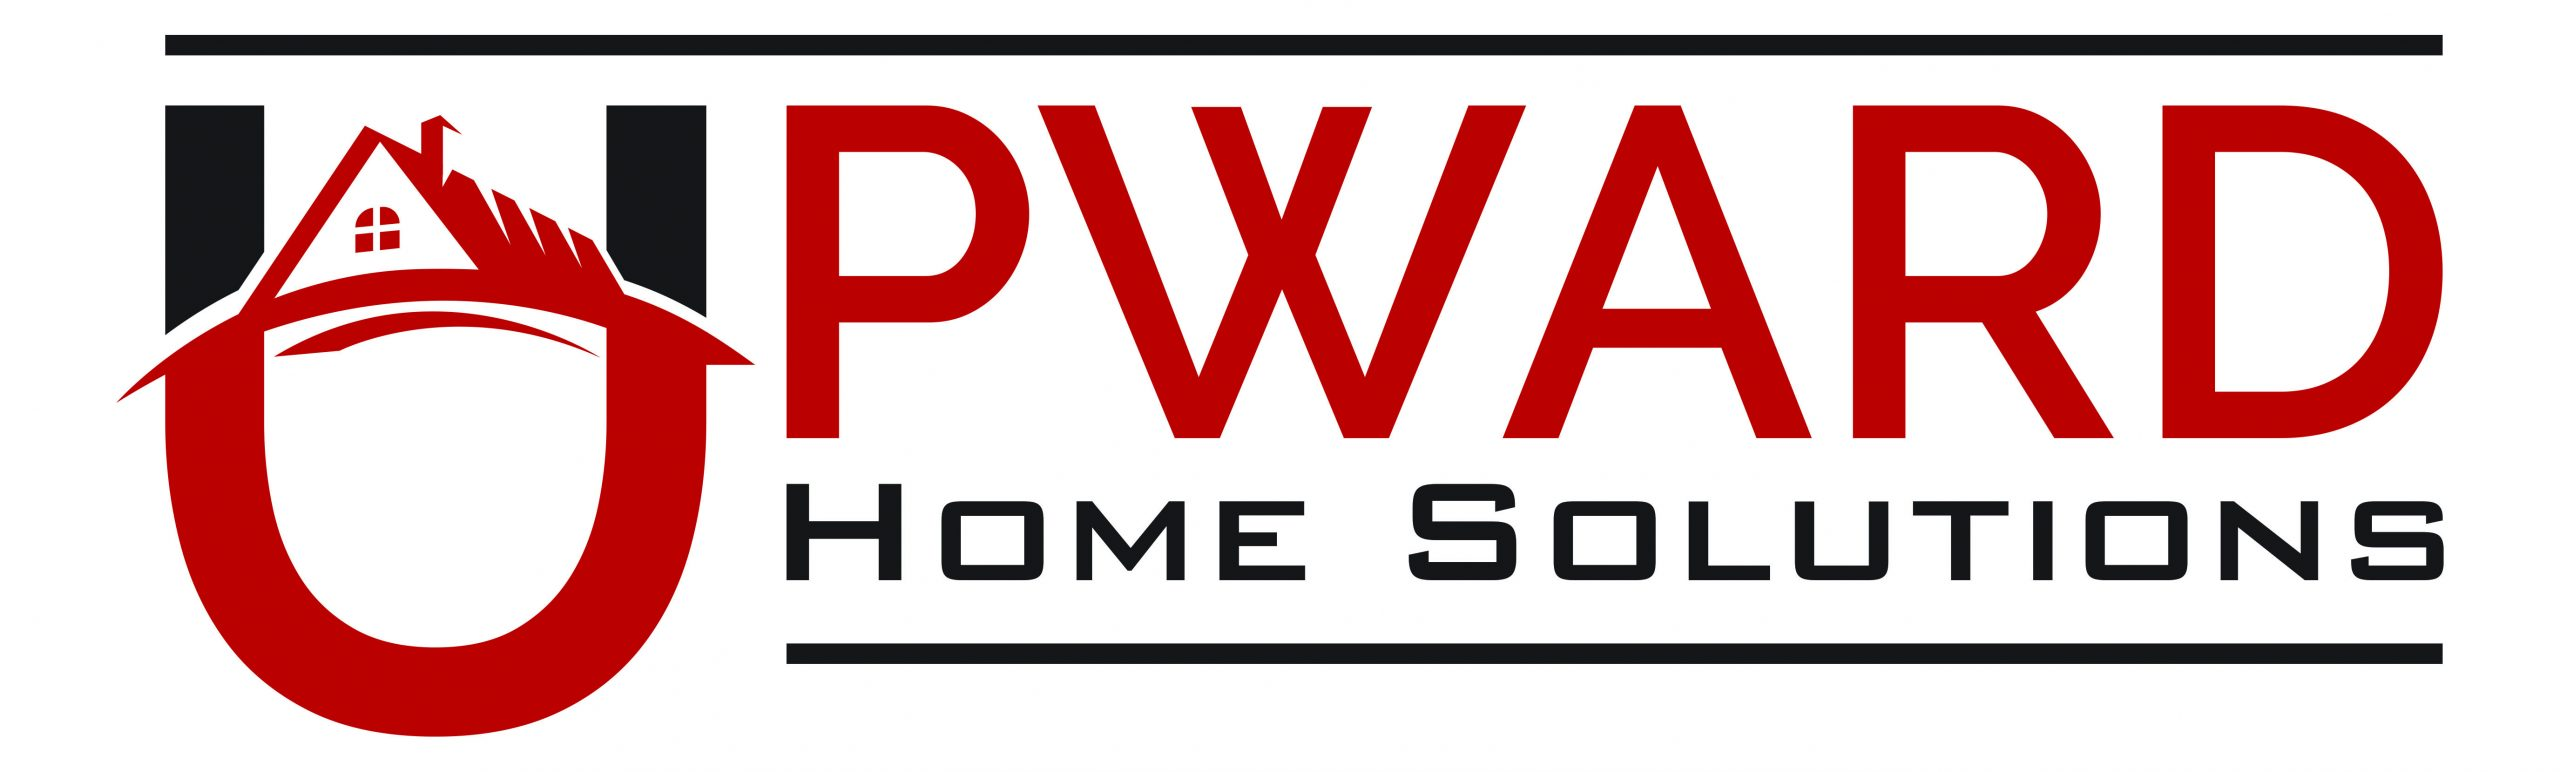 Upward Home Solutions logo.